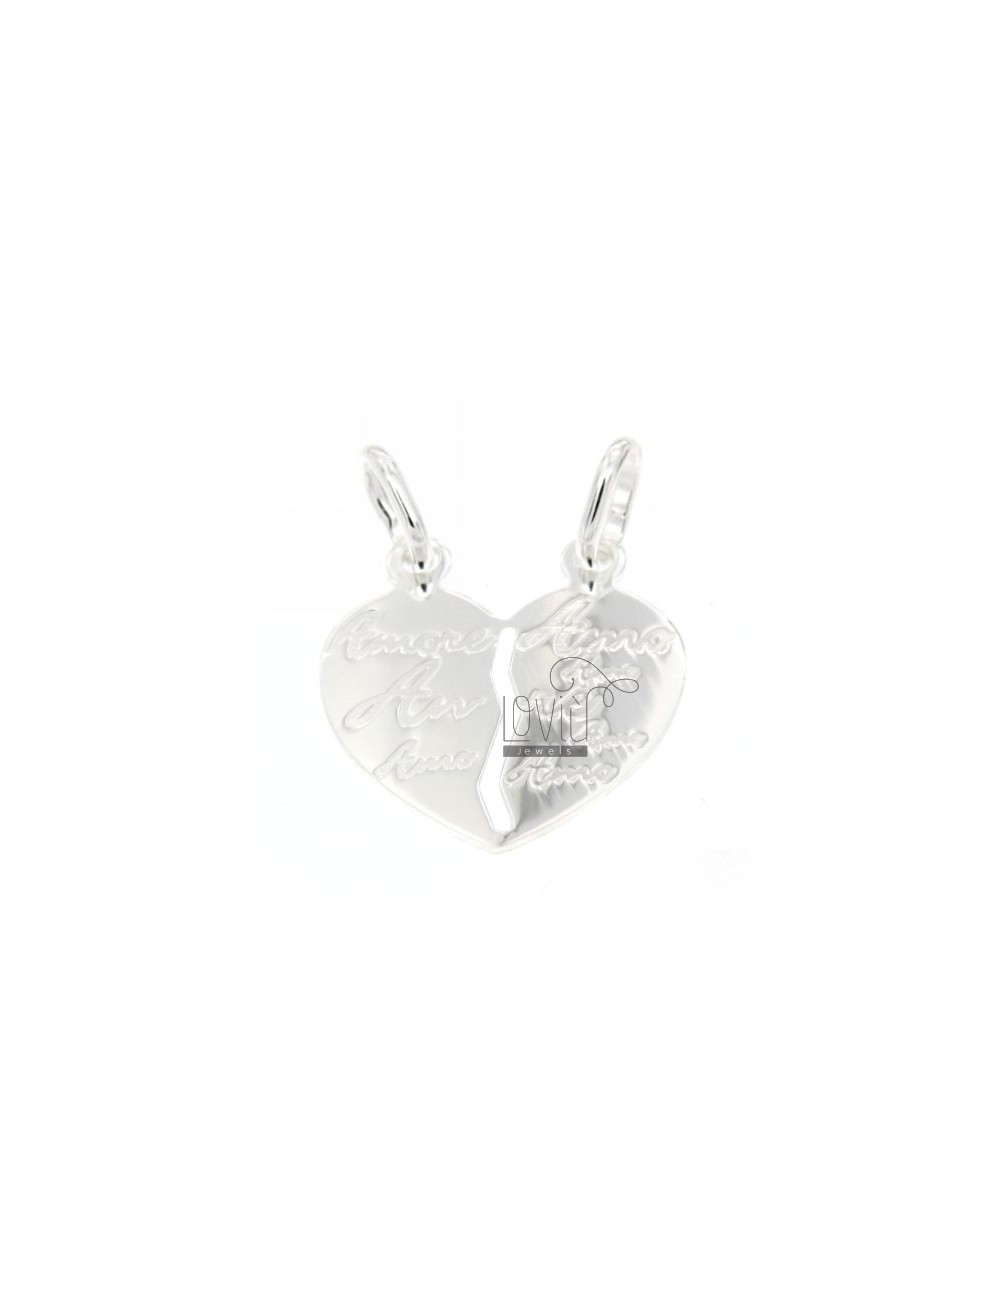 PENDANT HEART DIVIDED WITH LOVE WRITTEN ENGRAVED SILVER 925 ‰